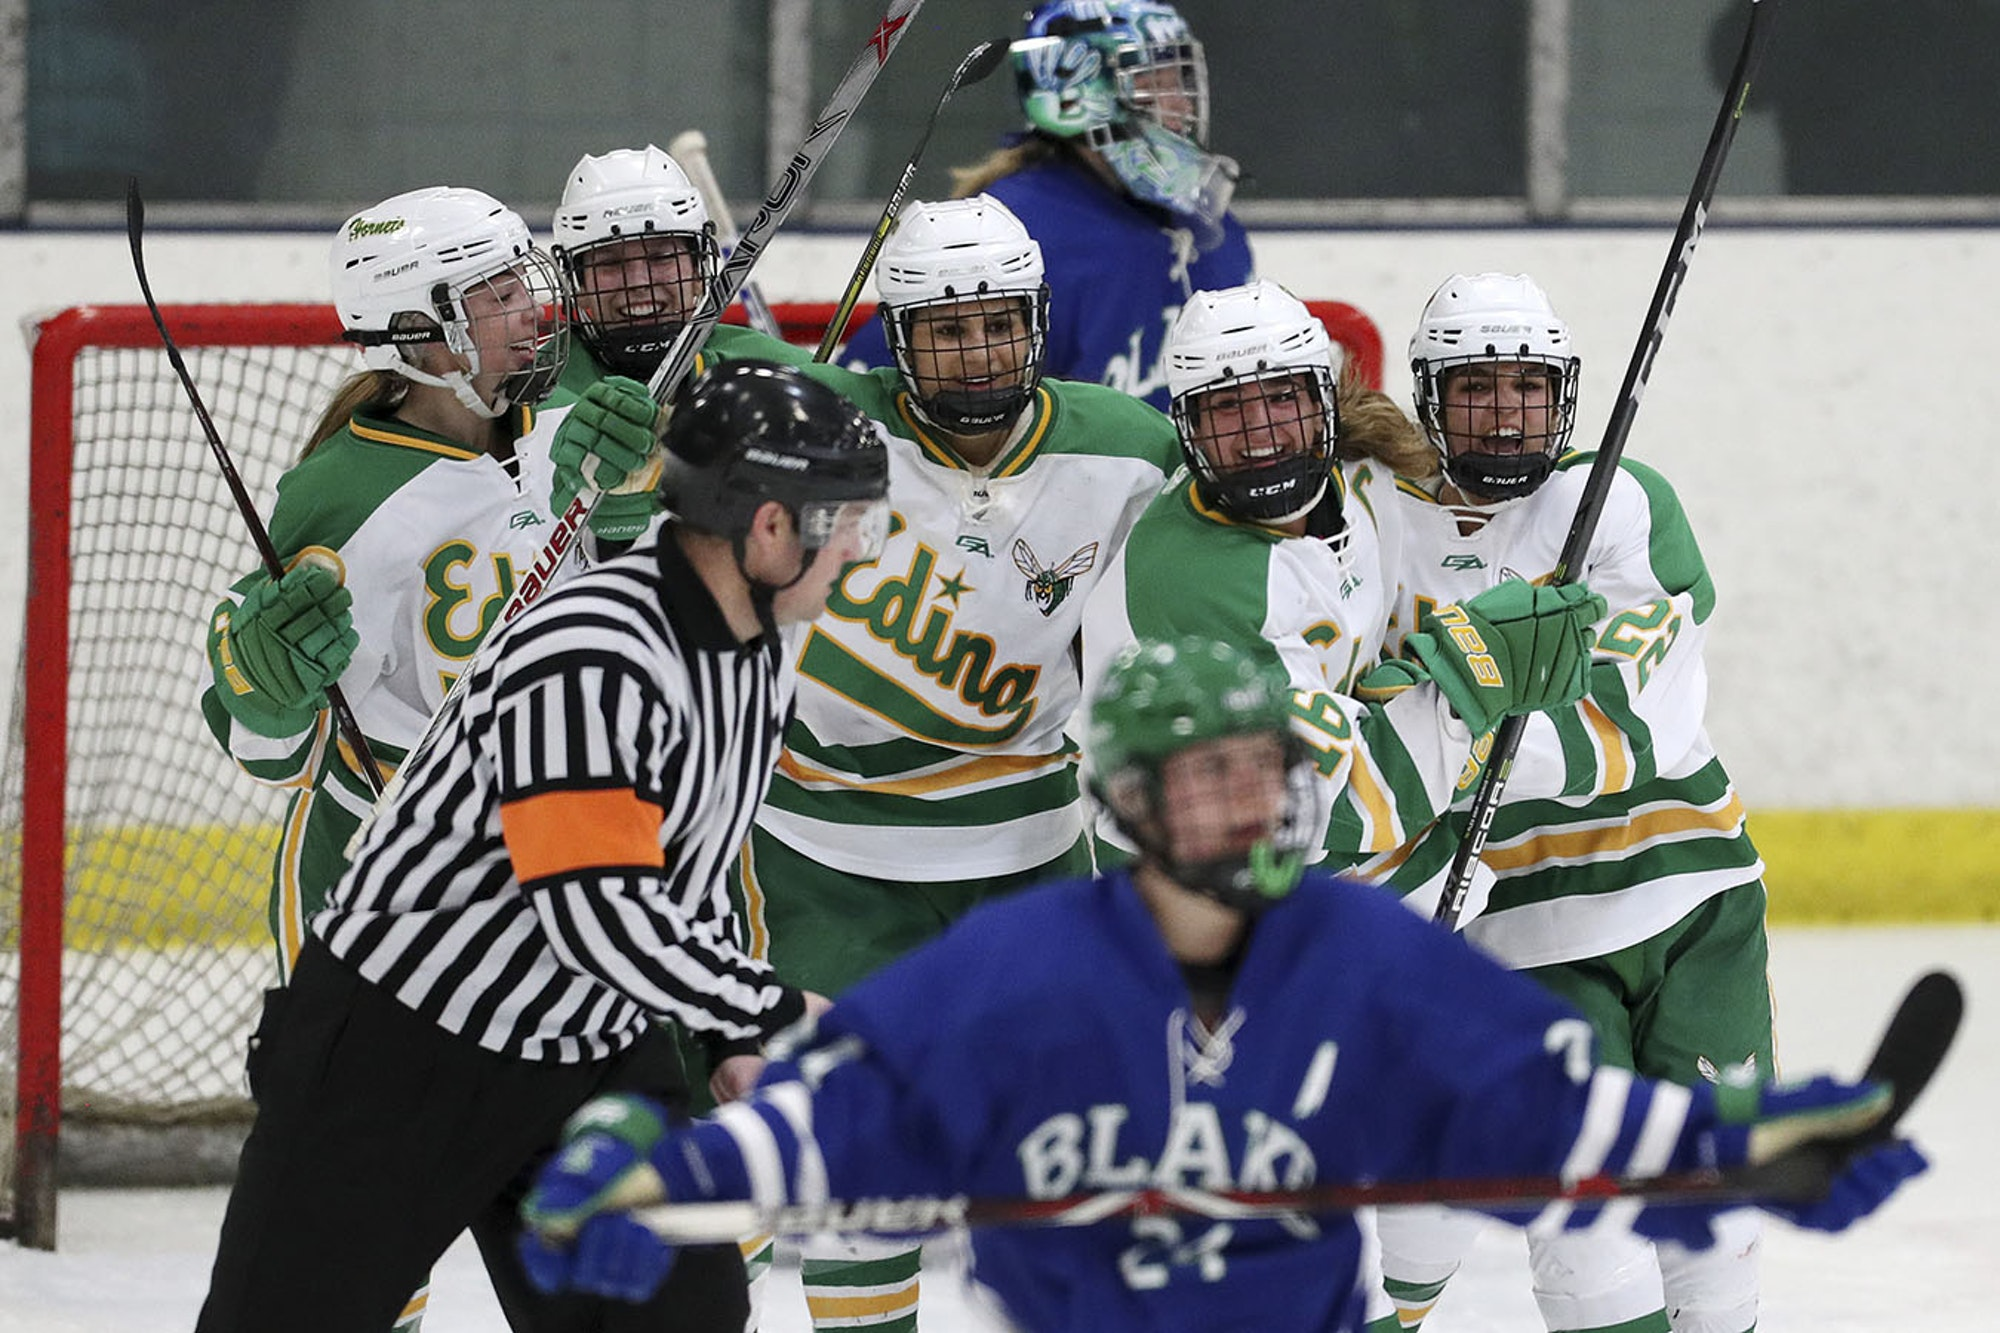 MN H.S.: Edina Tops Blake In Battle Of State's Top-ranked Girls Teams